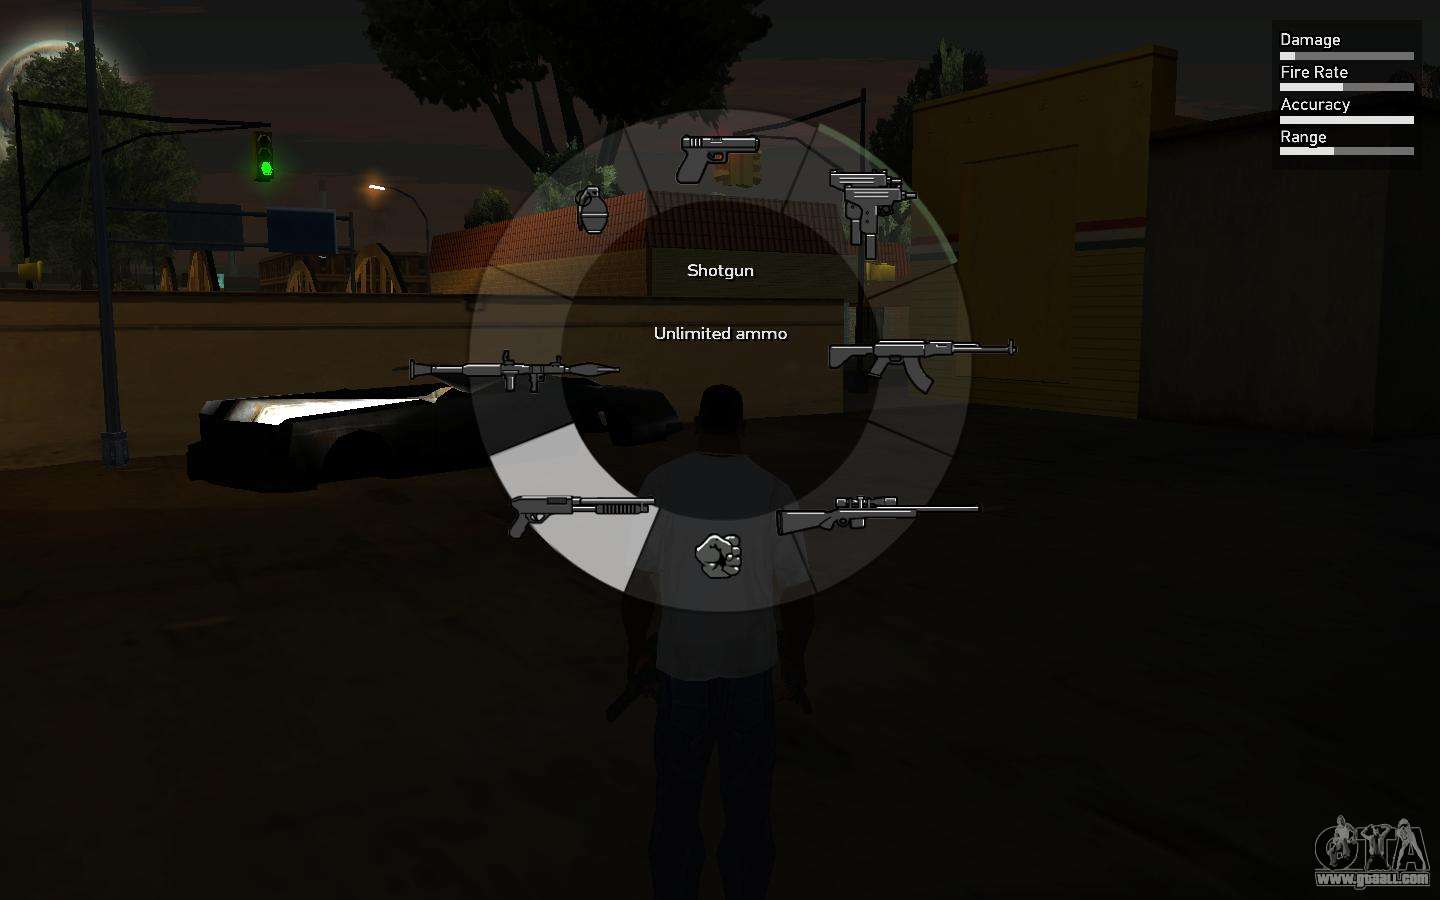 gta san andreas gun cheats pc with 33008 Gta V Weapon Scrolling on 78006 Mg 42 likewise Mygtavicecitystoriescheatpage also Gtav Updates Online Heists  ing March 10 Gtav For Pc as well Gta San Andreas Weapons moreover Gta 4 Codes  7C7NYnDJqtuw5YHiMoVqHYcMux05s3pmxr9mDlVyDc38.